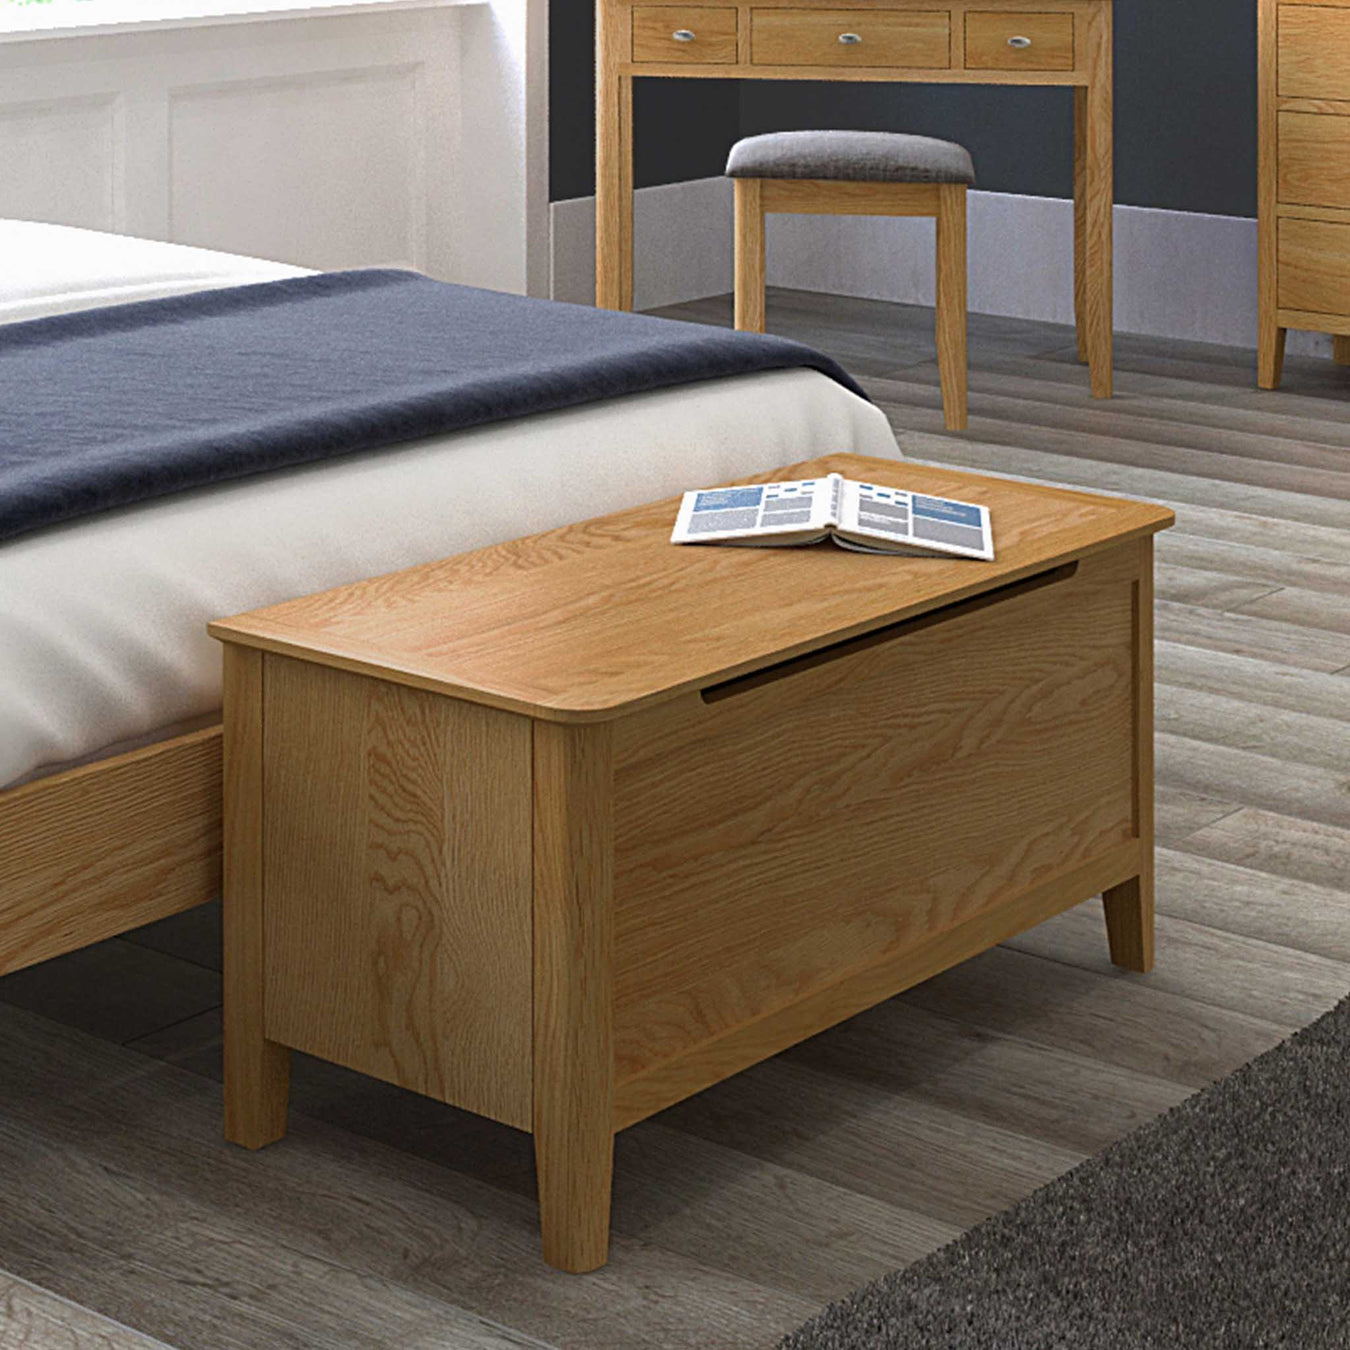 Oak & Solid Wood Blanket Boxes & Toy Boxes - Roseland Furniture